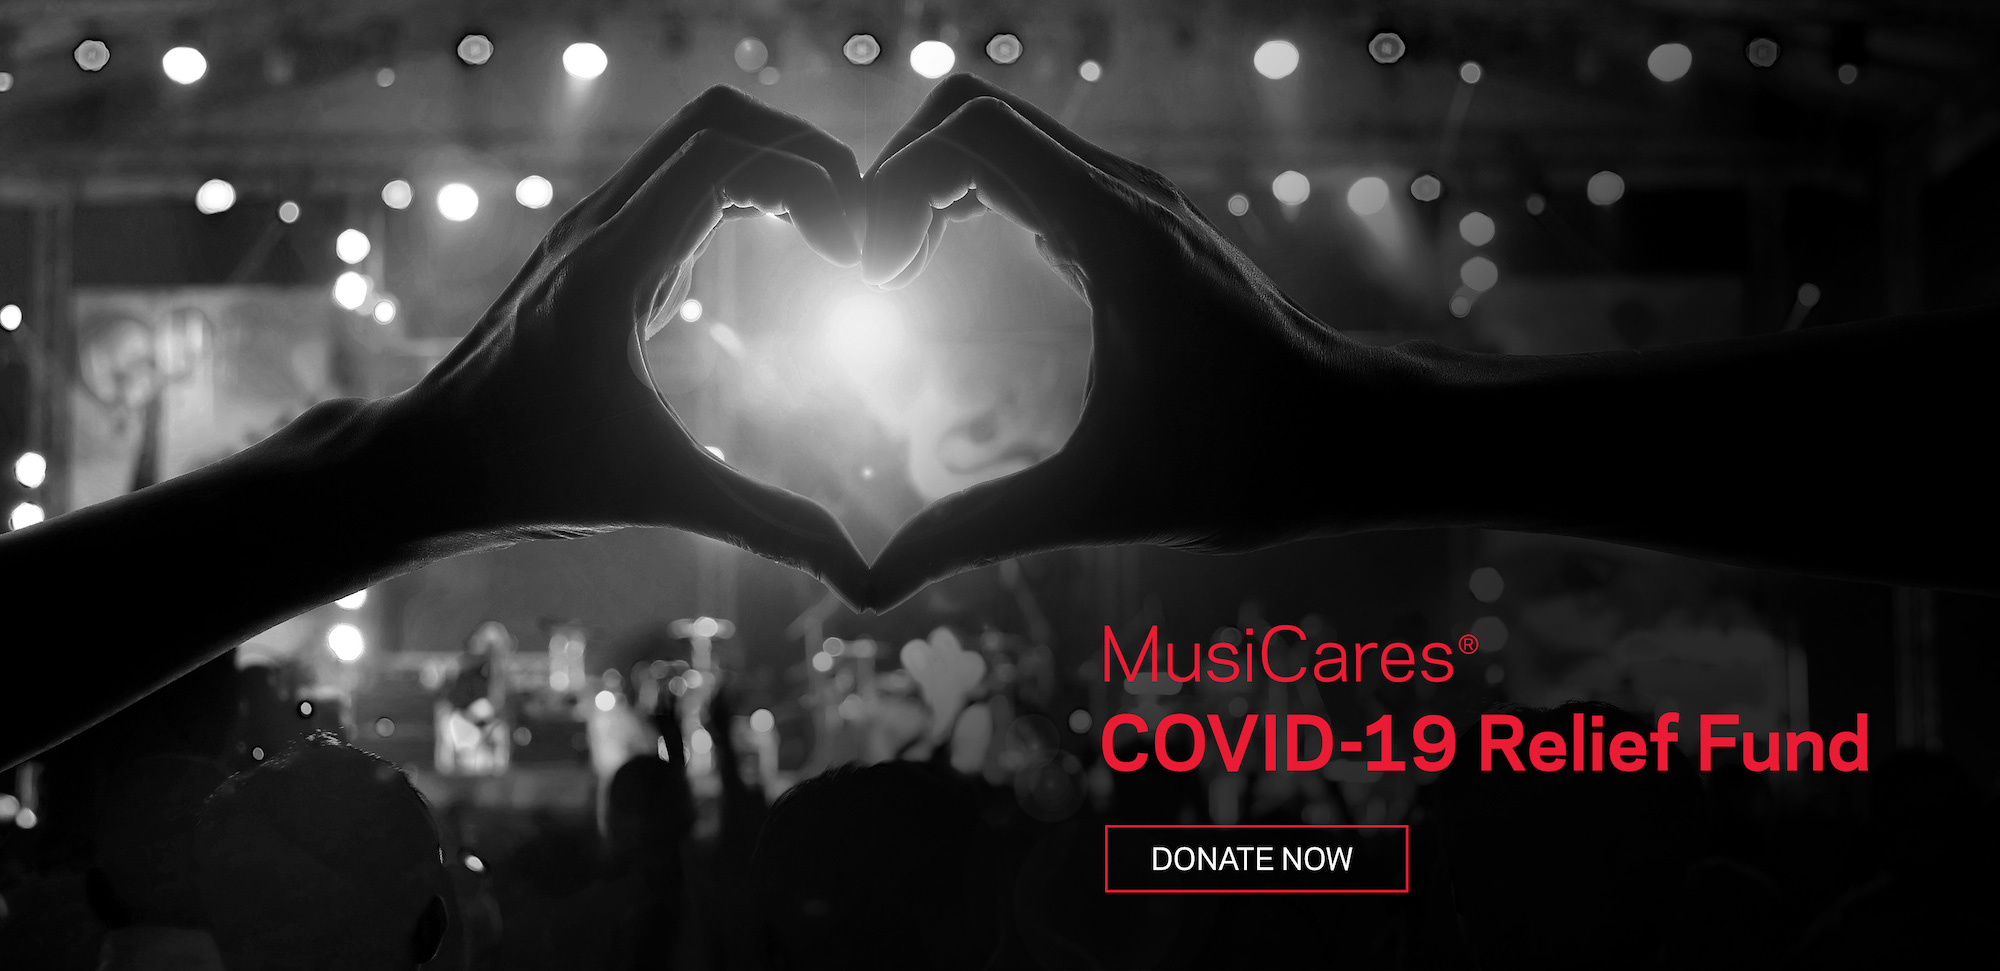 MusiCares COVID-19 Relief Fund